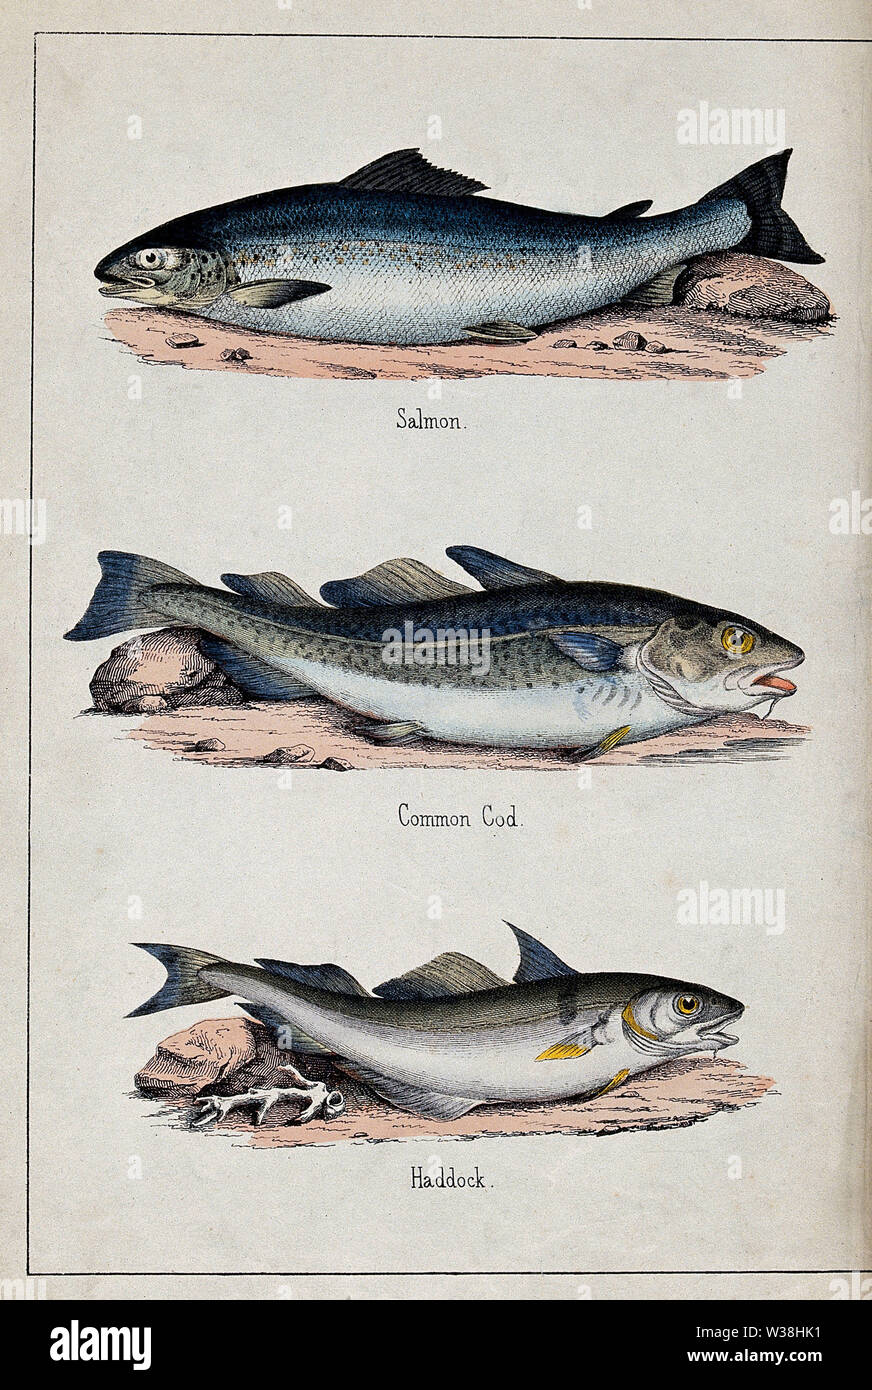 Above, a salmon; middle, a common cod; below, a haddock. Coloured lithograph. - Stock Image